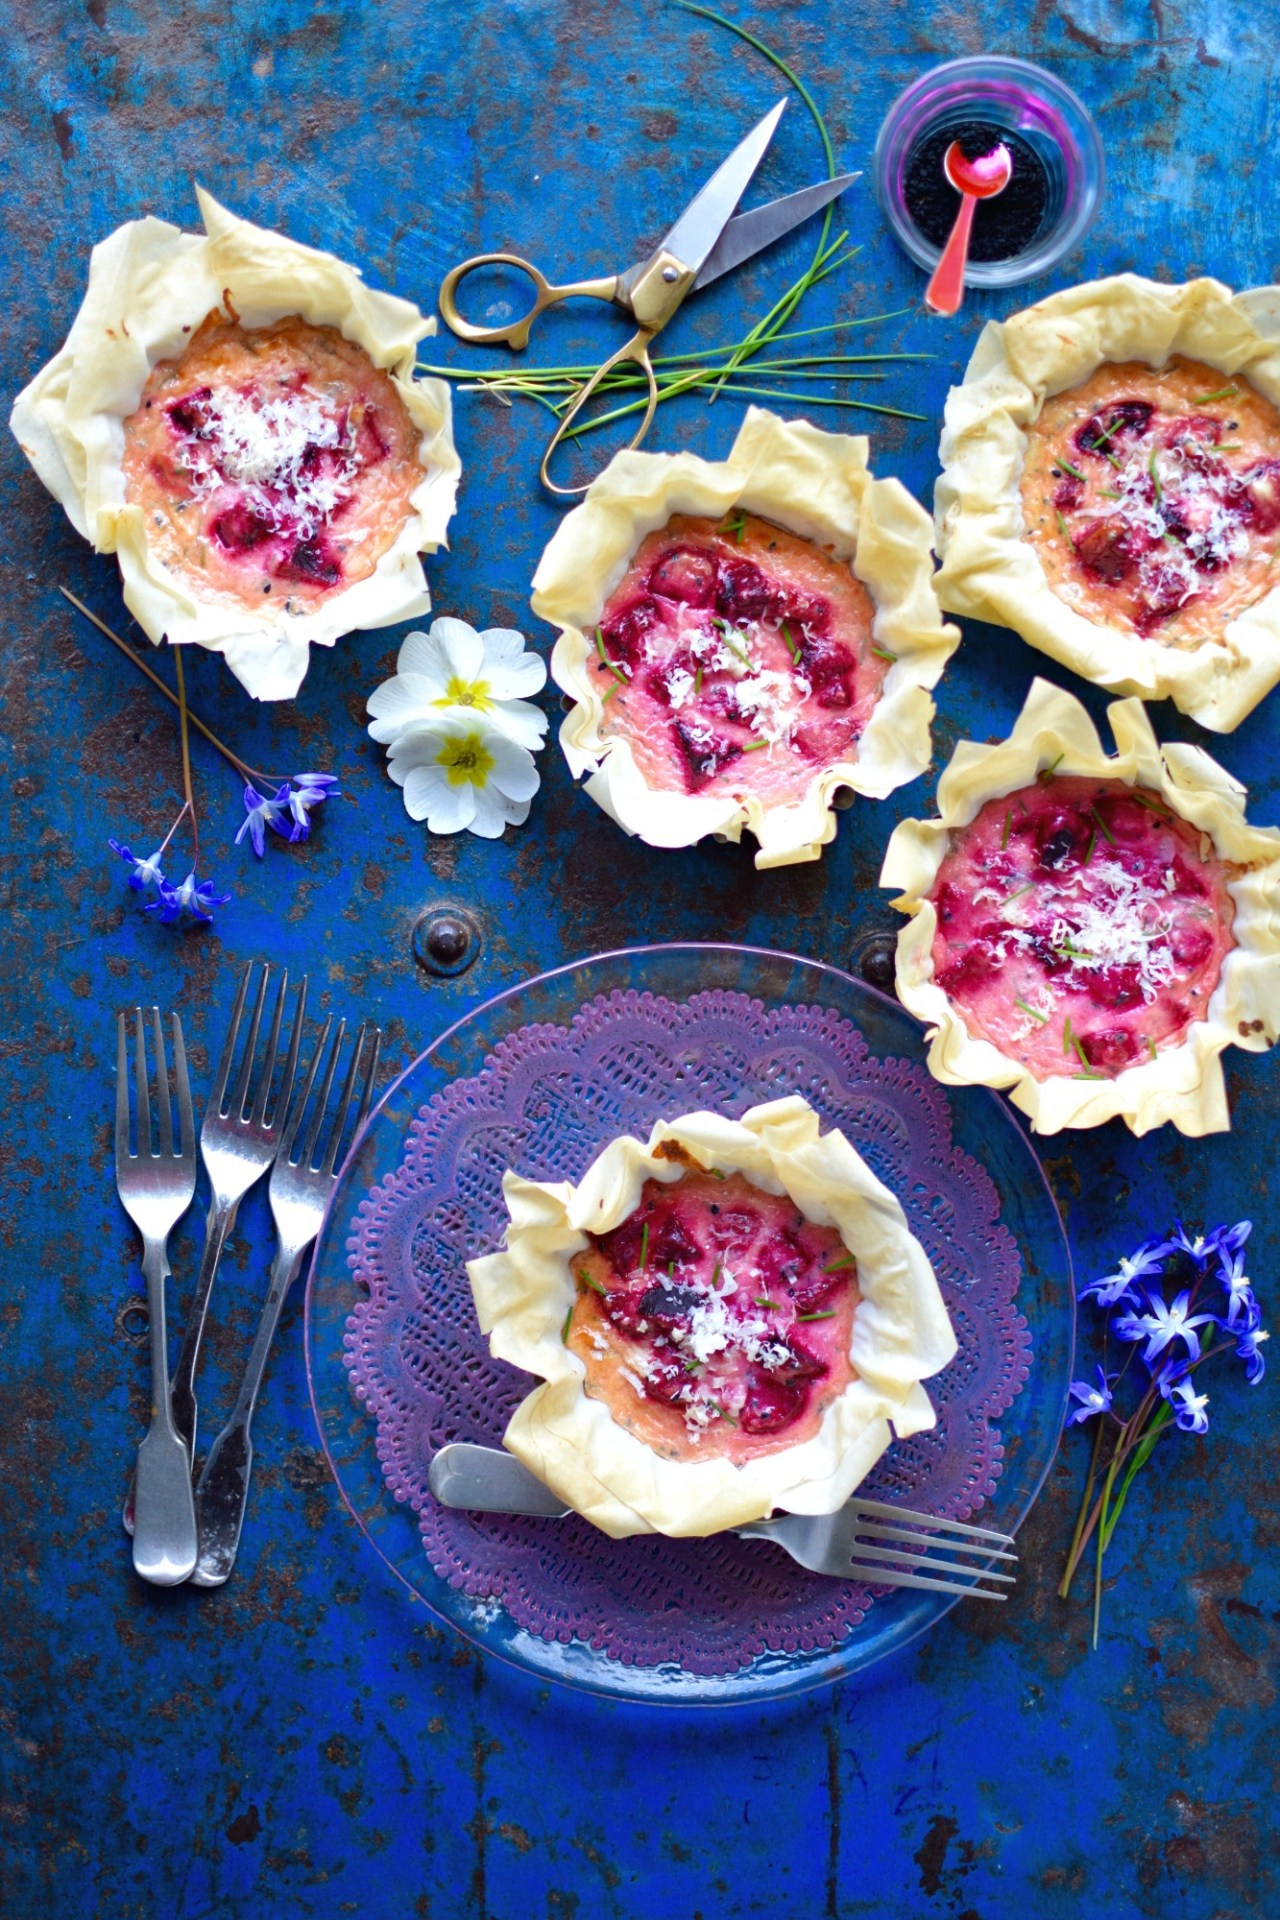 Earthy, tangy beets married with smooth creamy ricotta in crunchy filo make a delightful and simple starter or light lunch. Add intriguing nigella seeds and you've got the wow factor. A colourful, lip-smacking vegetarian recipe forspecial occasions - and no occasion!